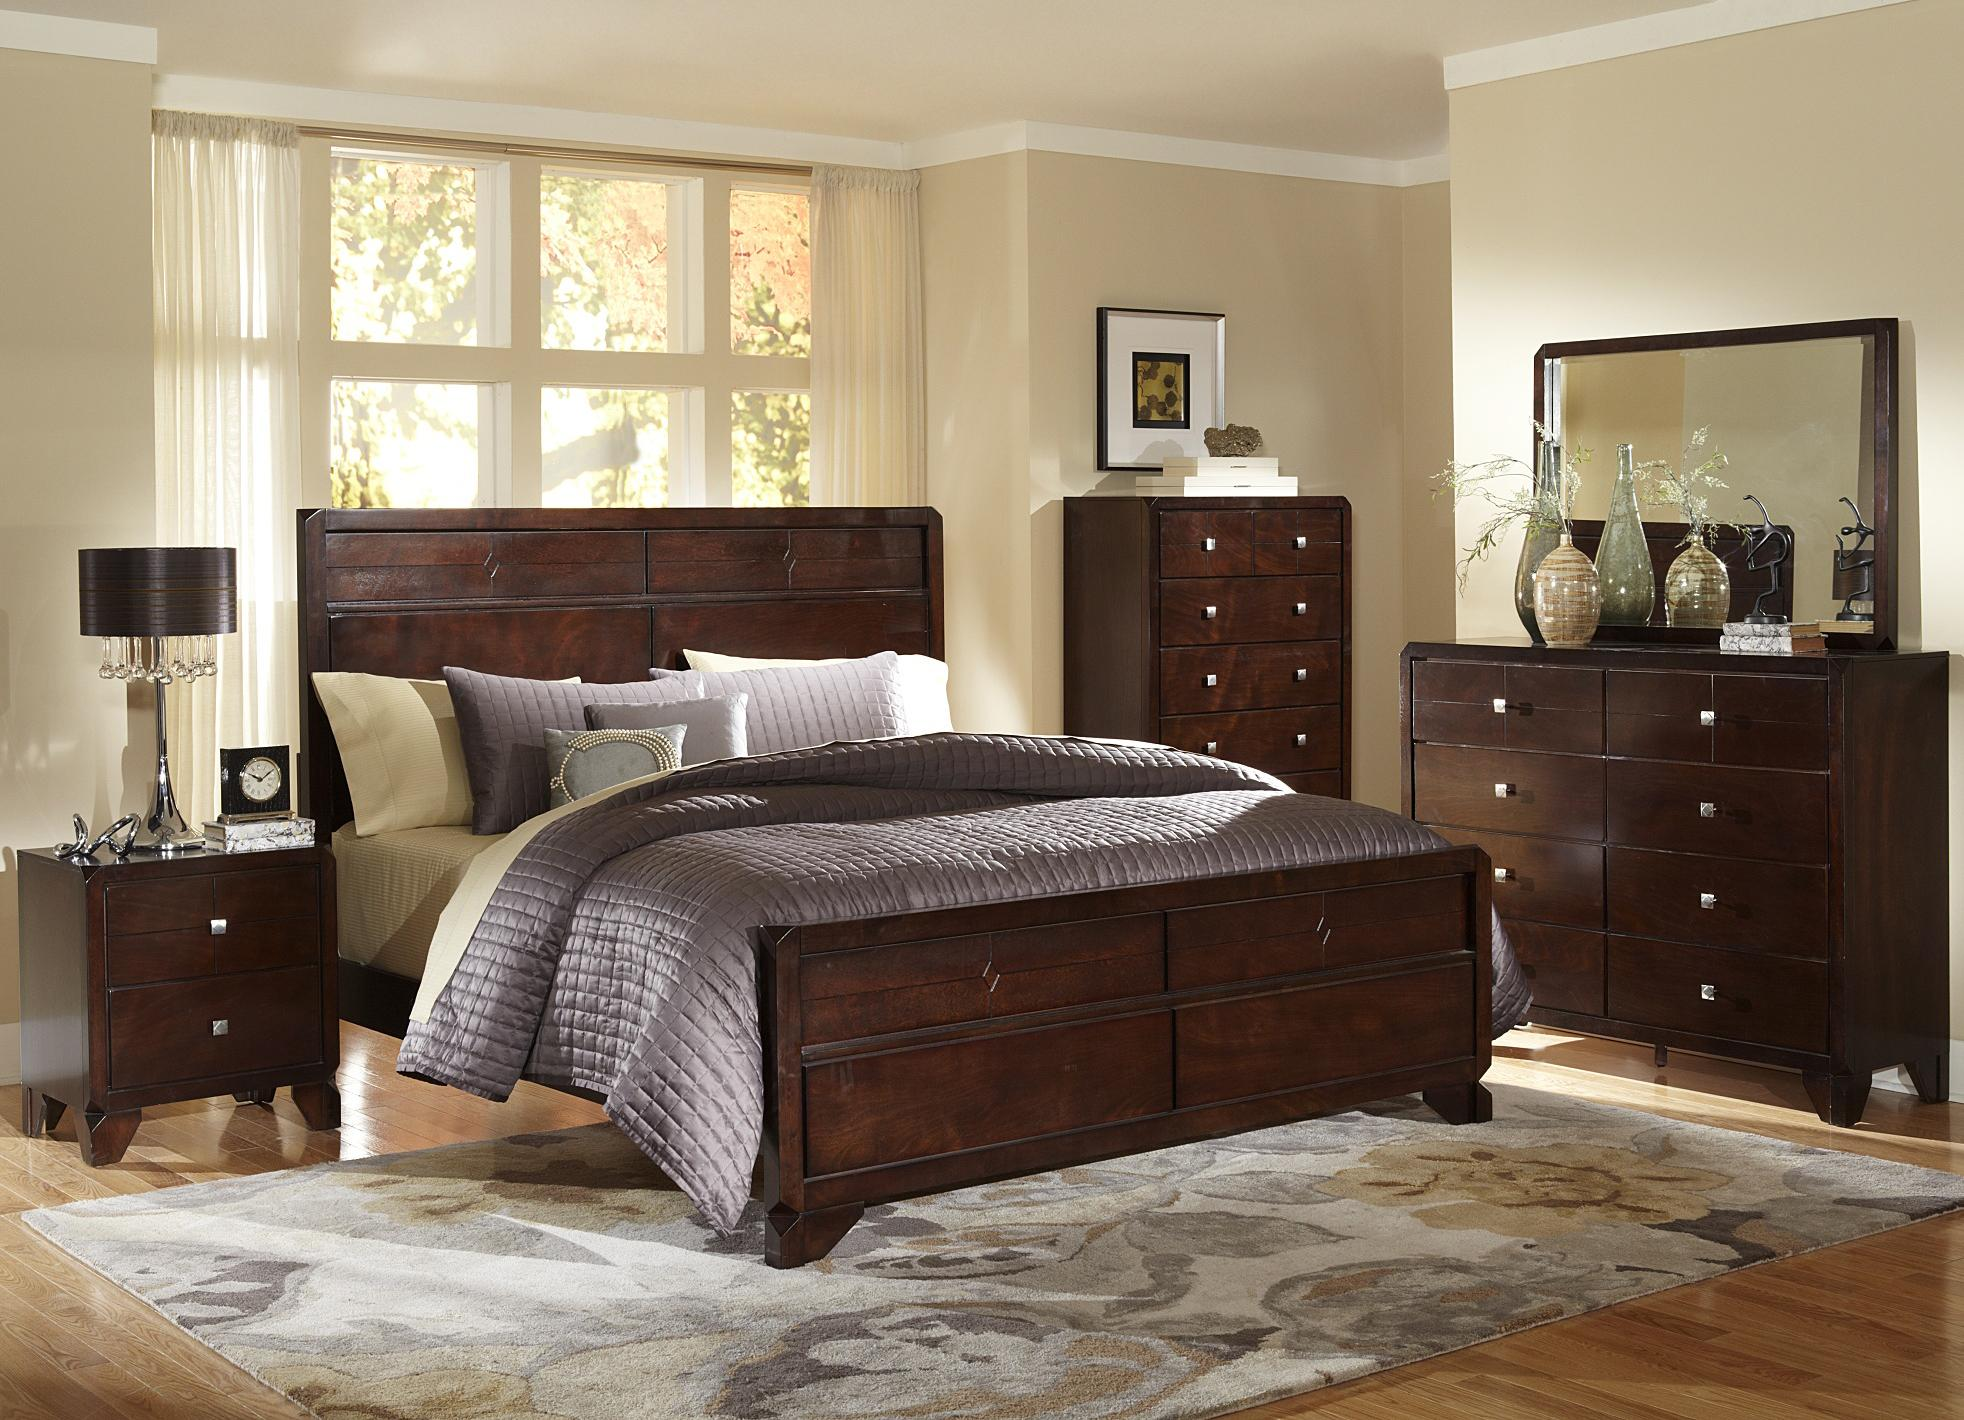 2180A Queen Bedroom Group by Lifestyle at Furniture Fair - North Carolina